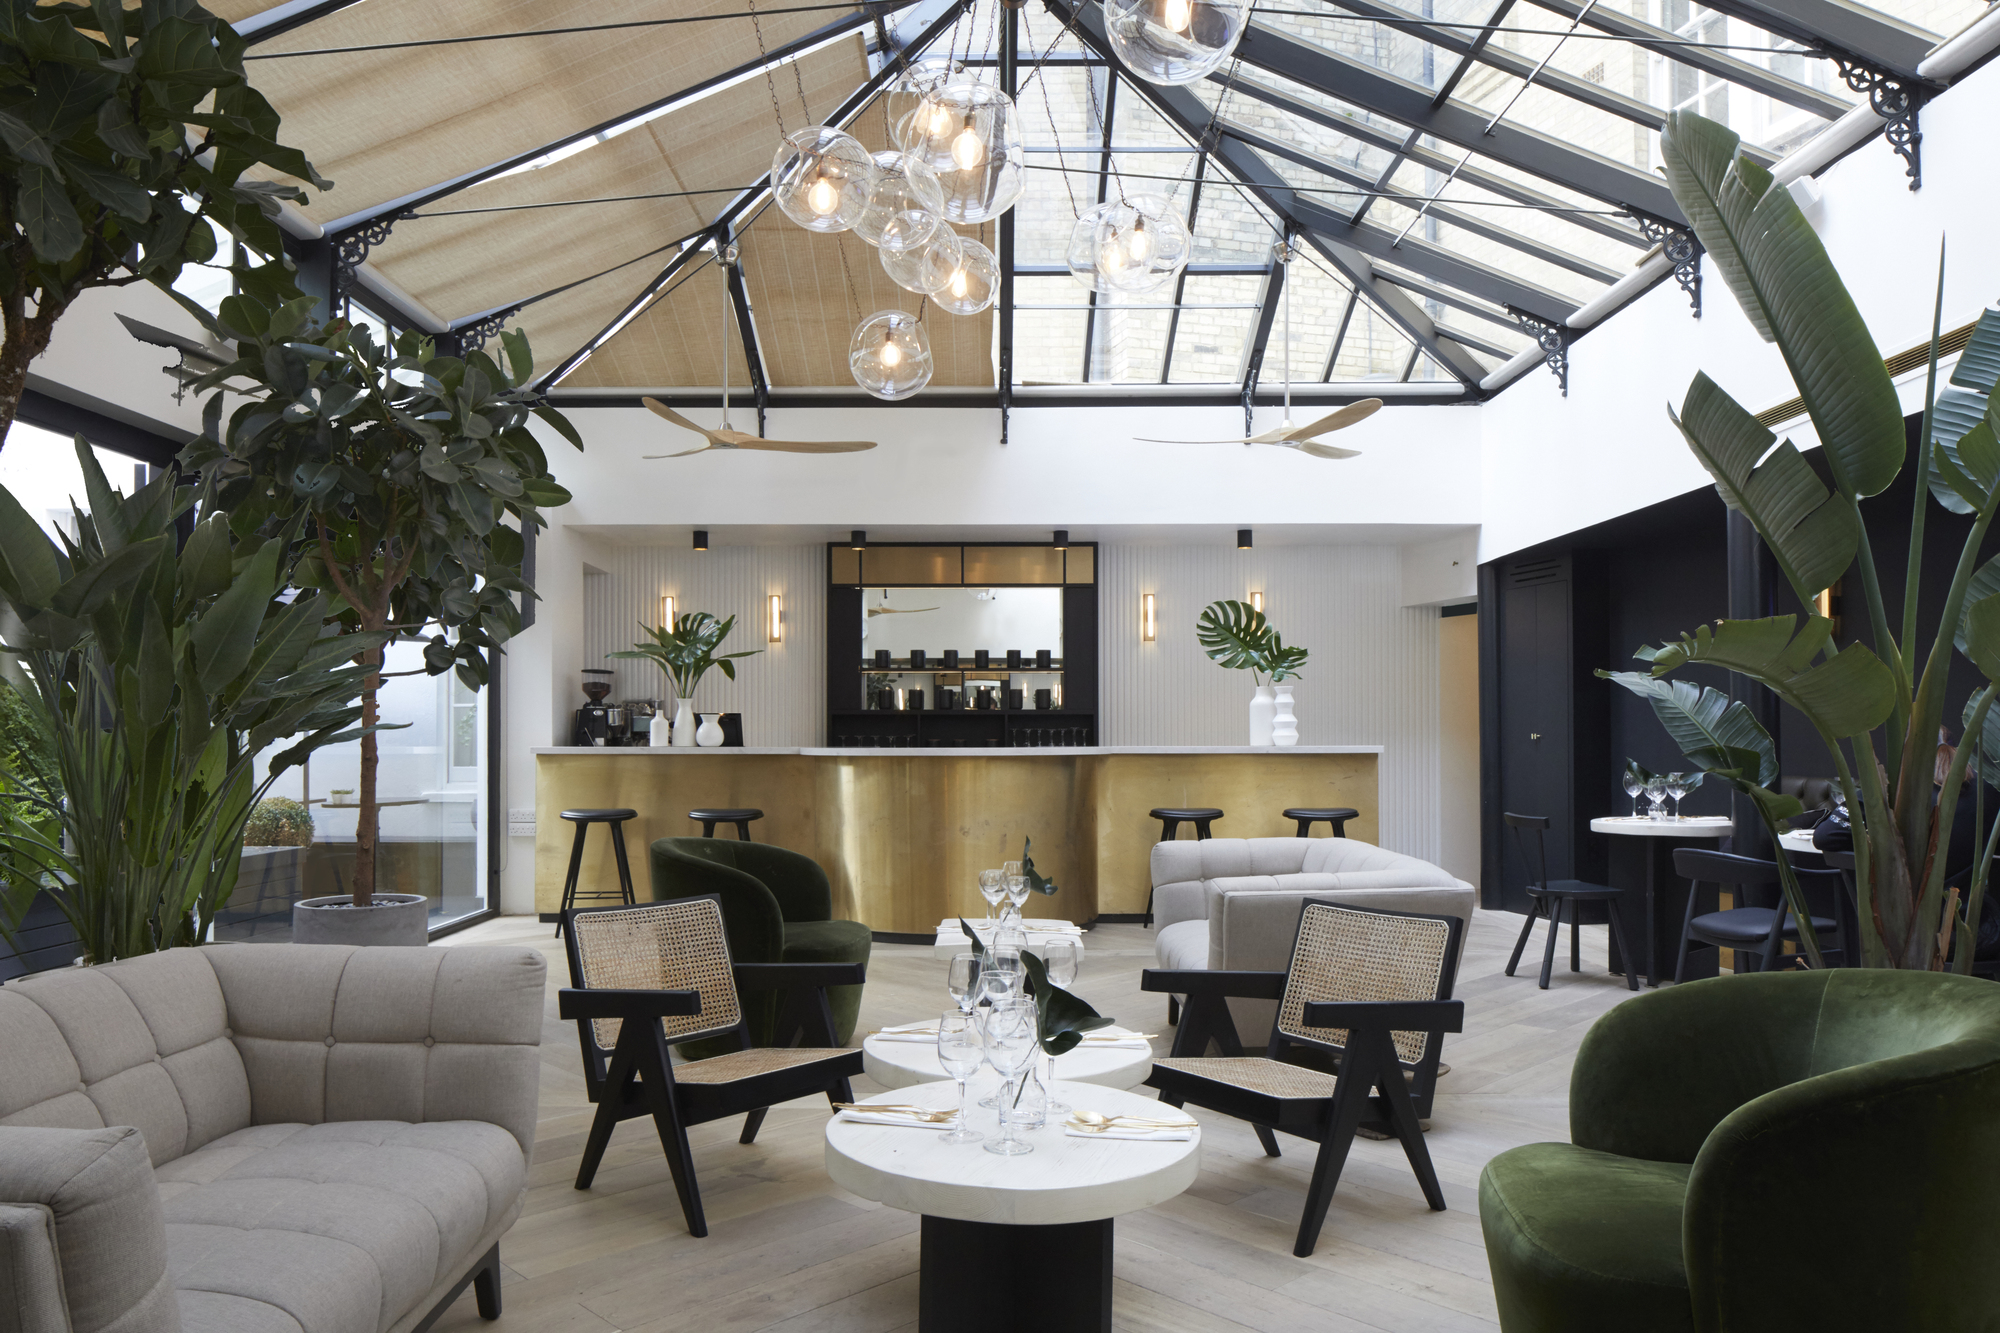 Mychelsea boutique hotel design haus liberty archdaily for Boutique hotel design